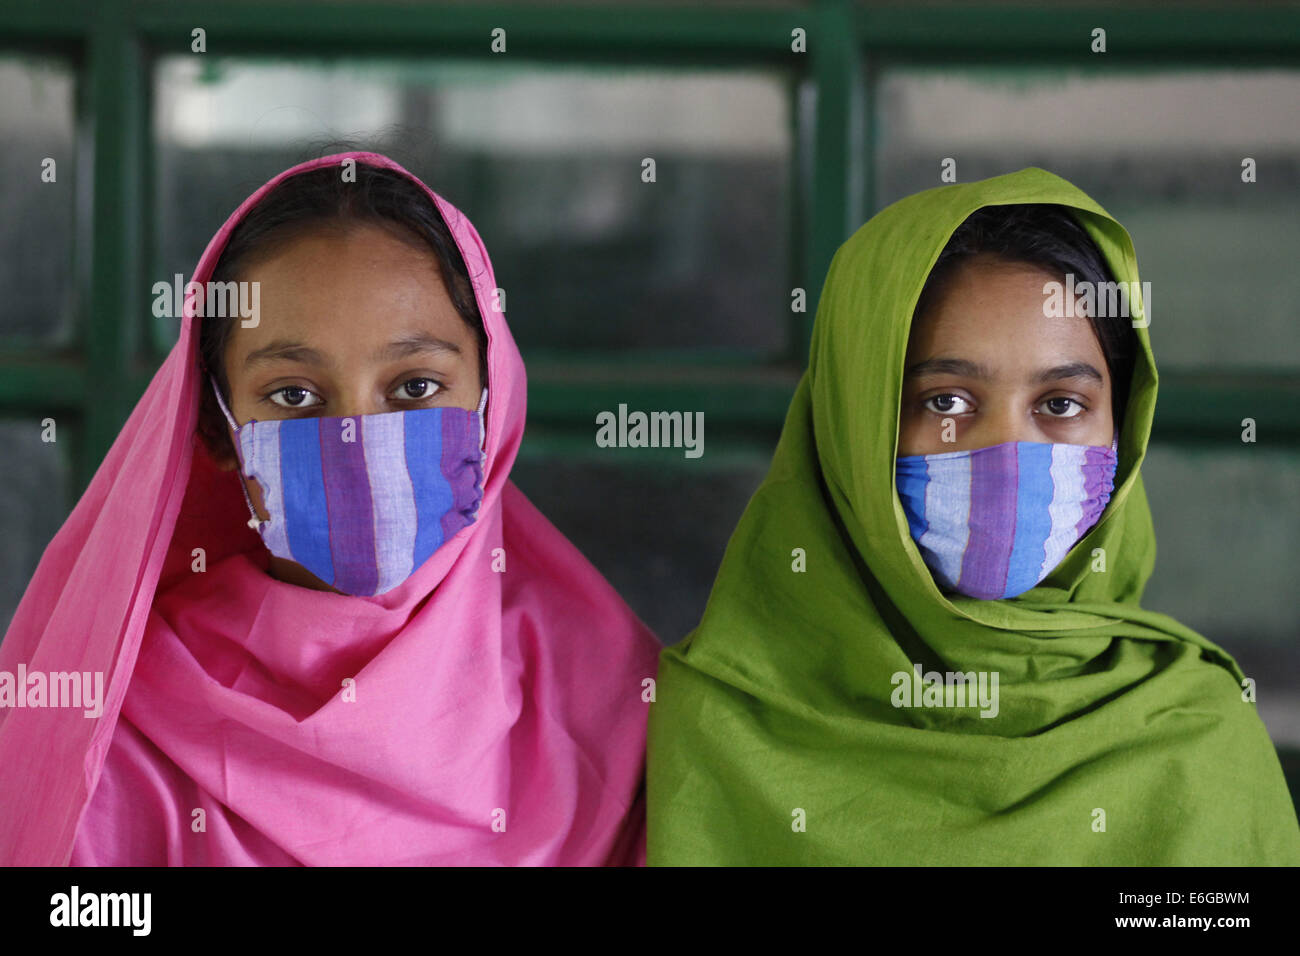 Dhaka, Bangladesh. 24th Mar, 2014. Mim & Sonia two sister ages of 13 & 15.They are affectd by TB & got - Stock Image